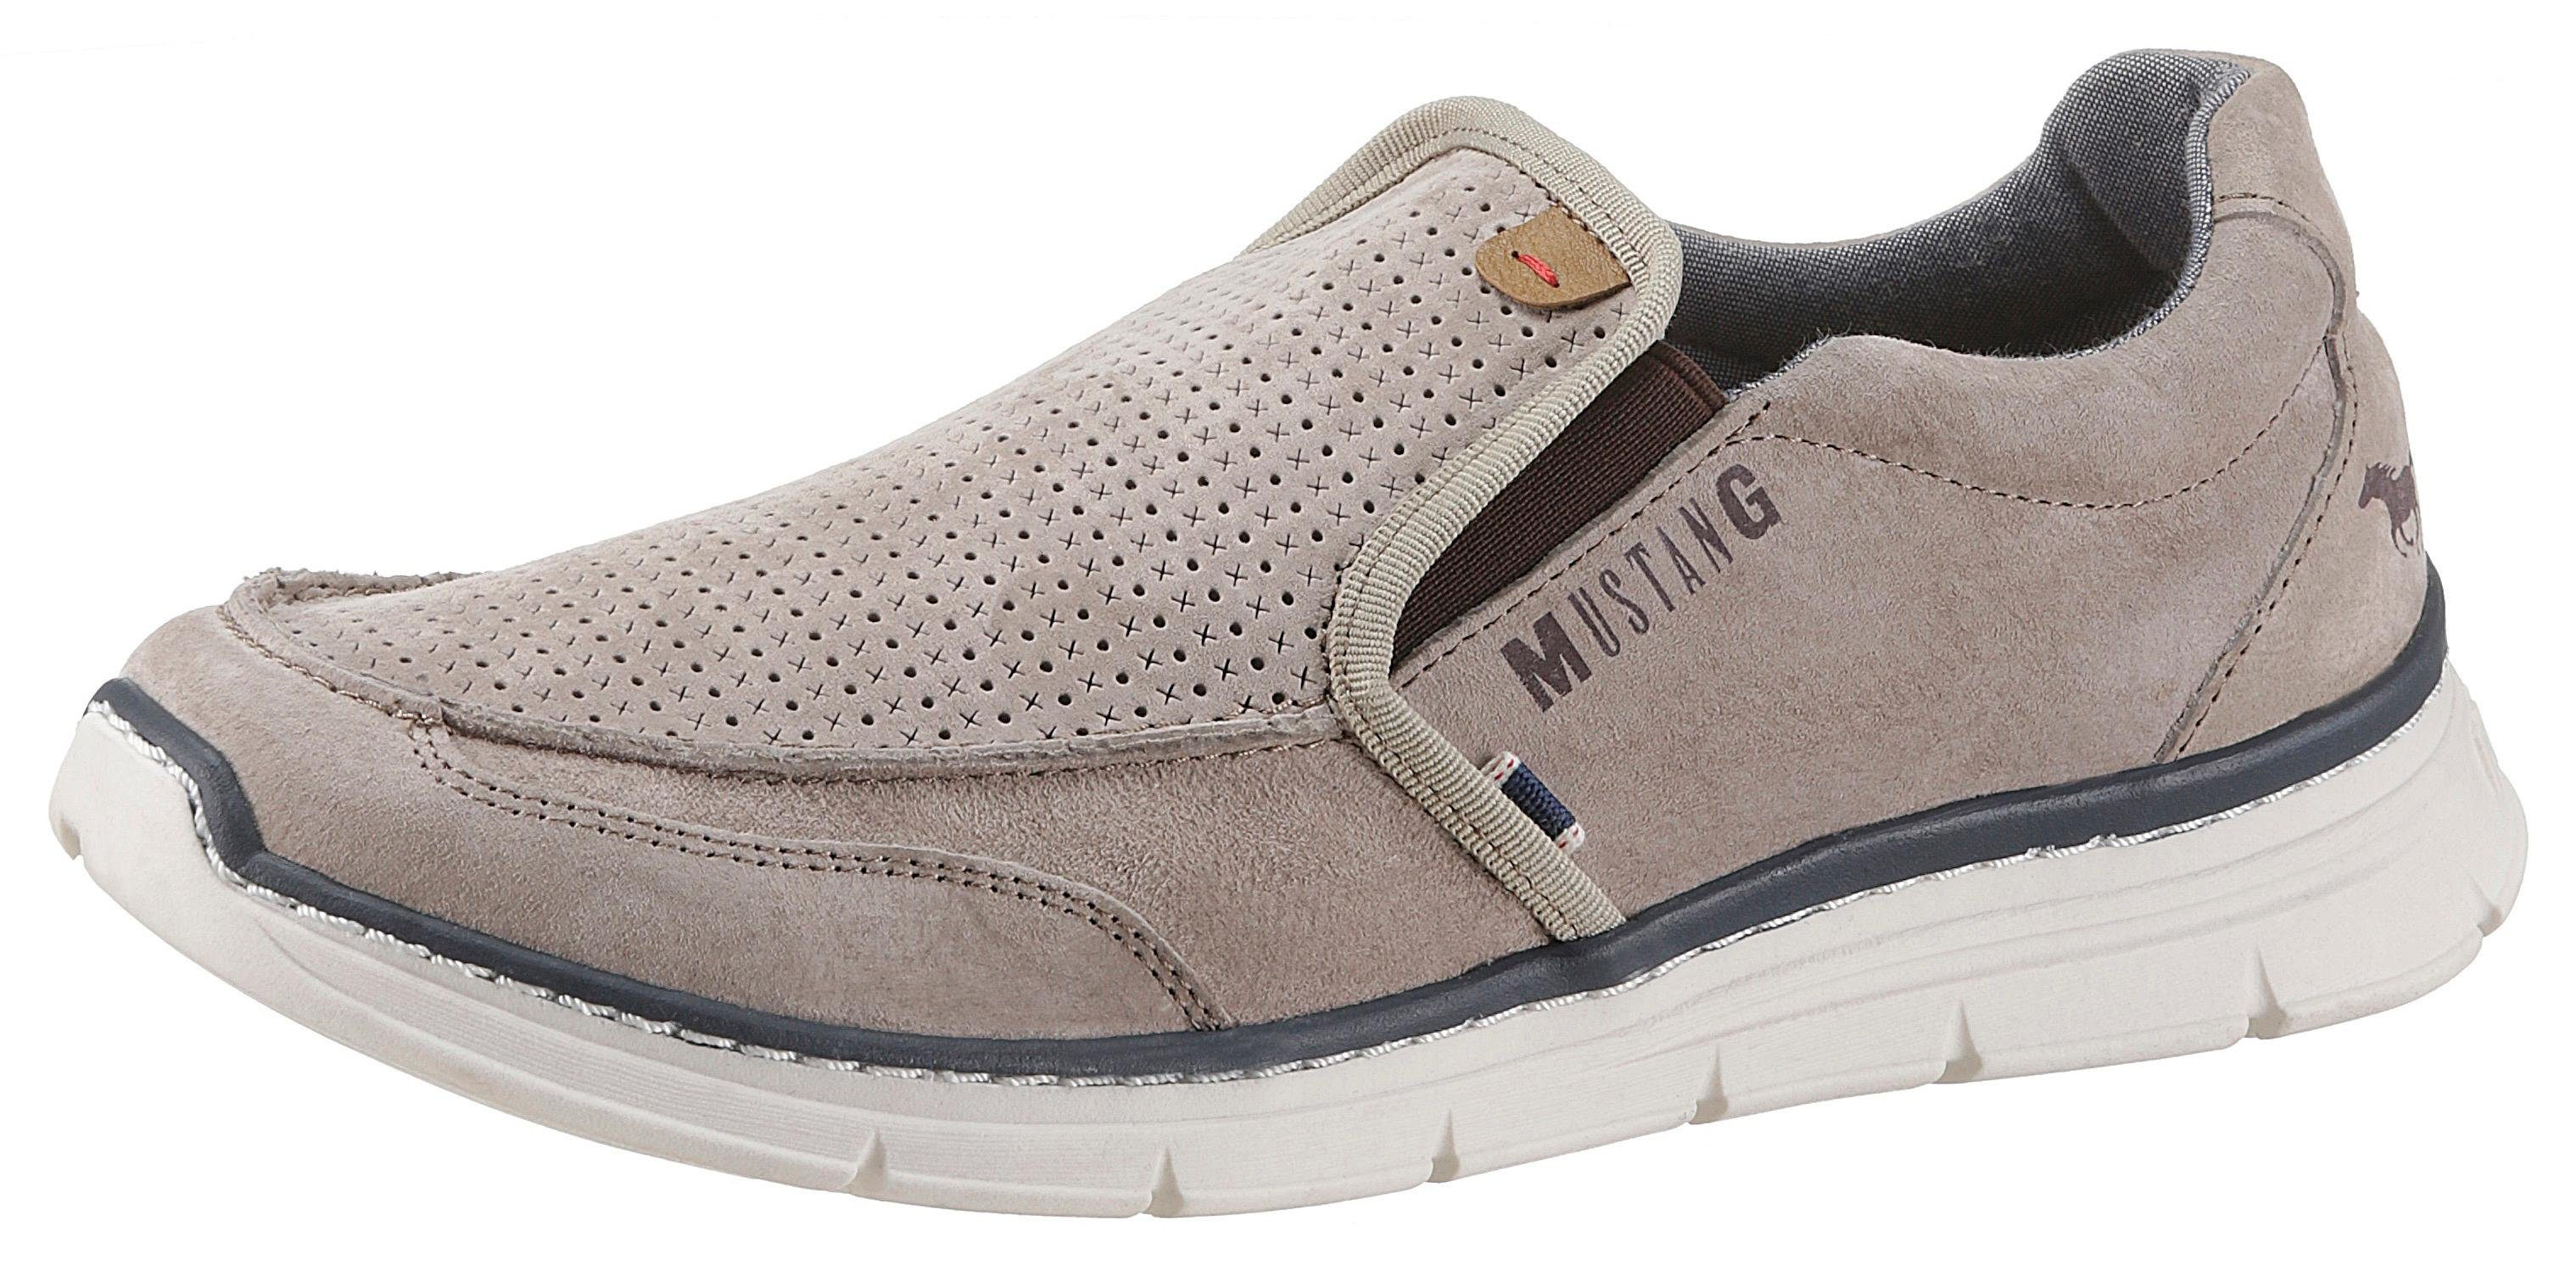 Mustang Shoes Slipper mit angesagter Perforation